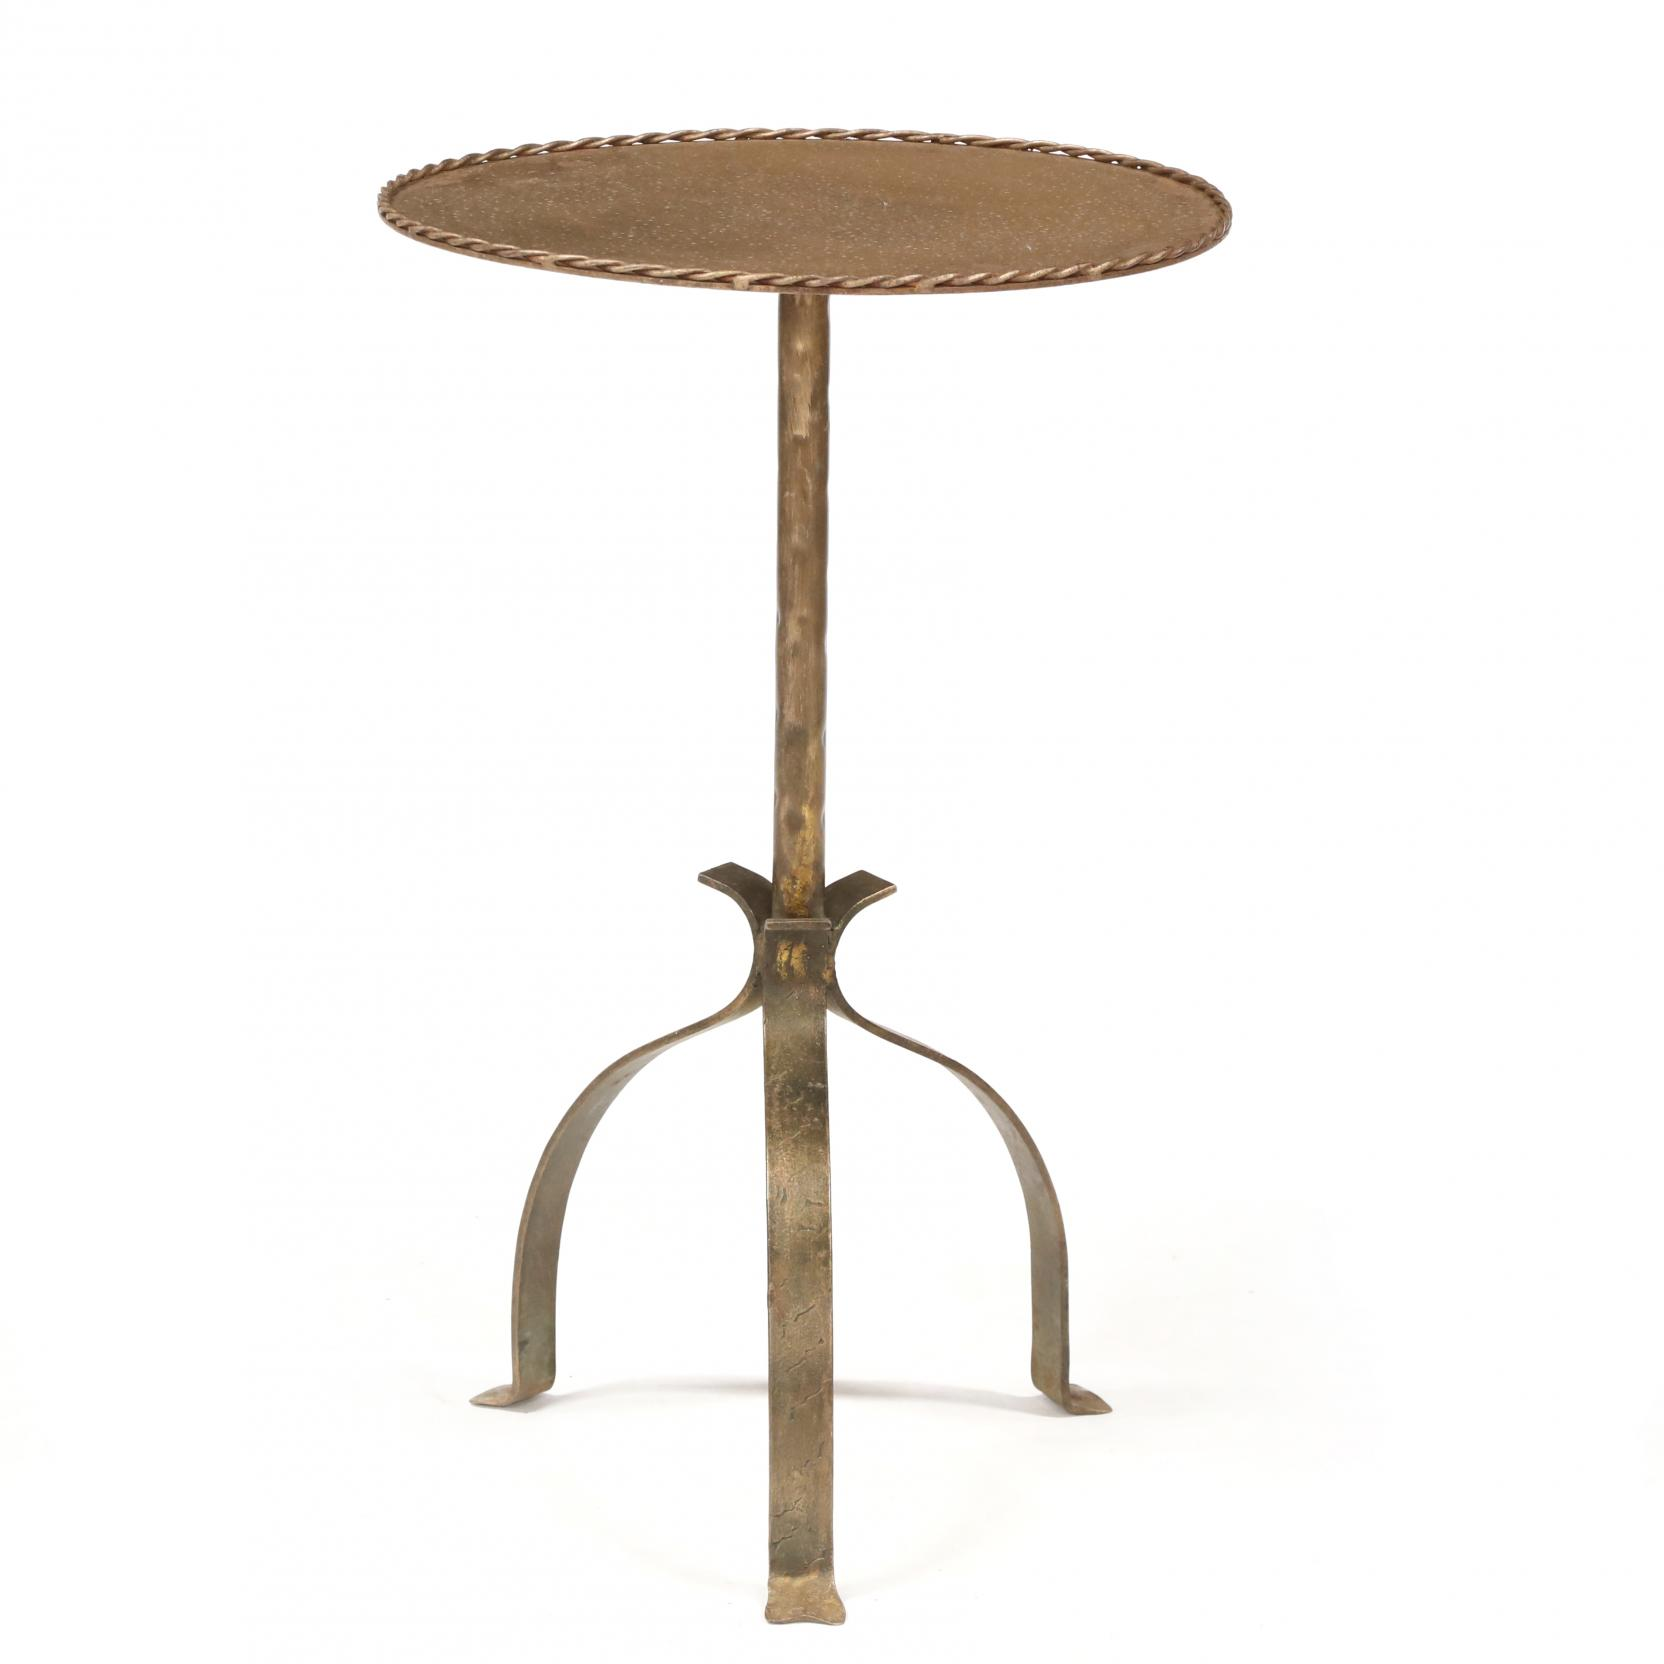 spanish-style-gilt-iron-side-table